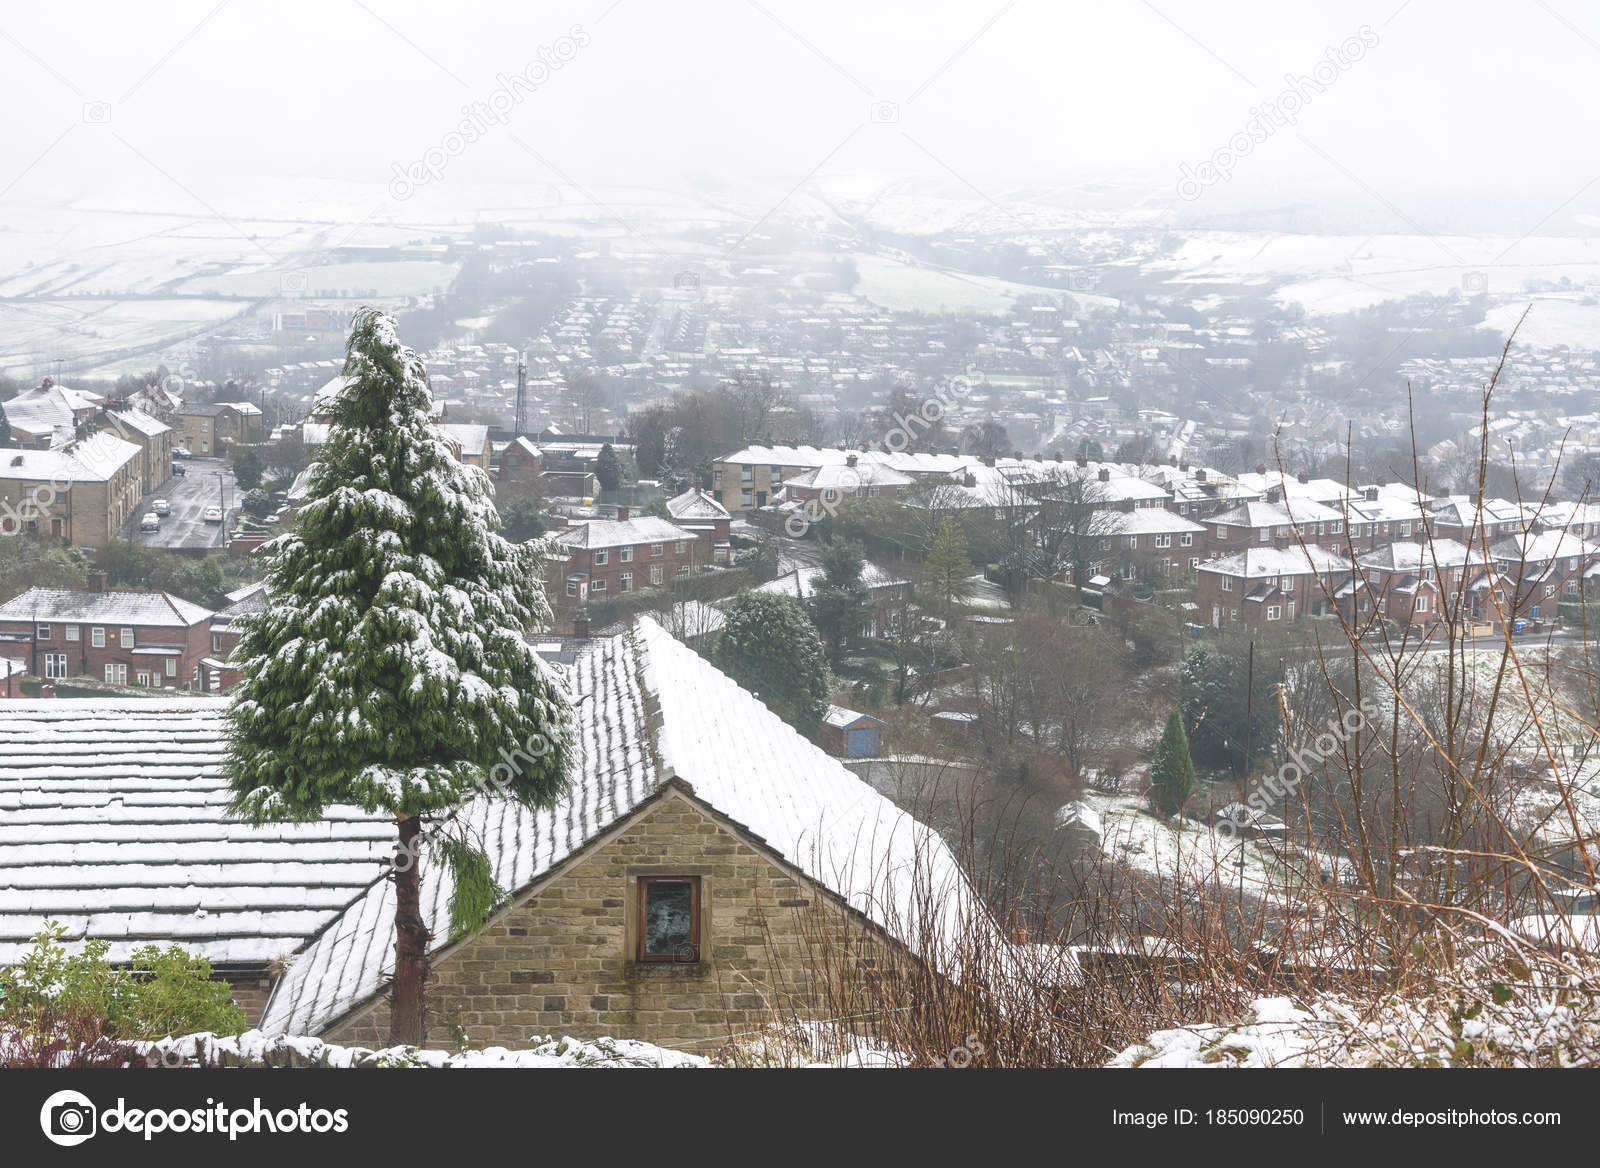 England Christmas Snow.Top View Snow Covered Village Christmas Trees Noth West